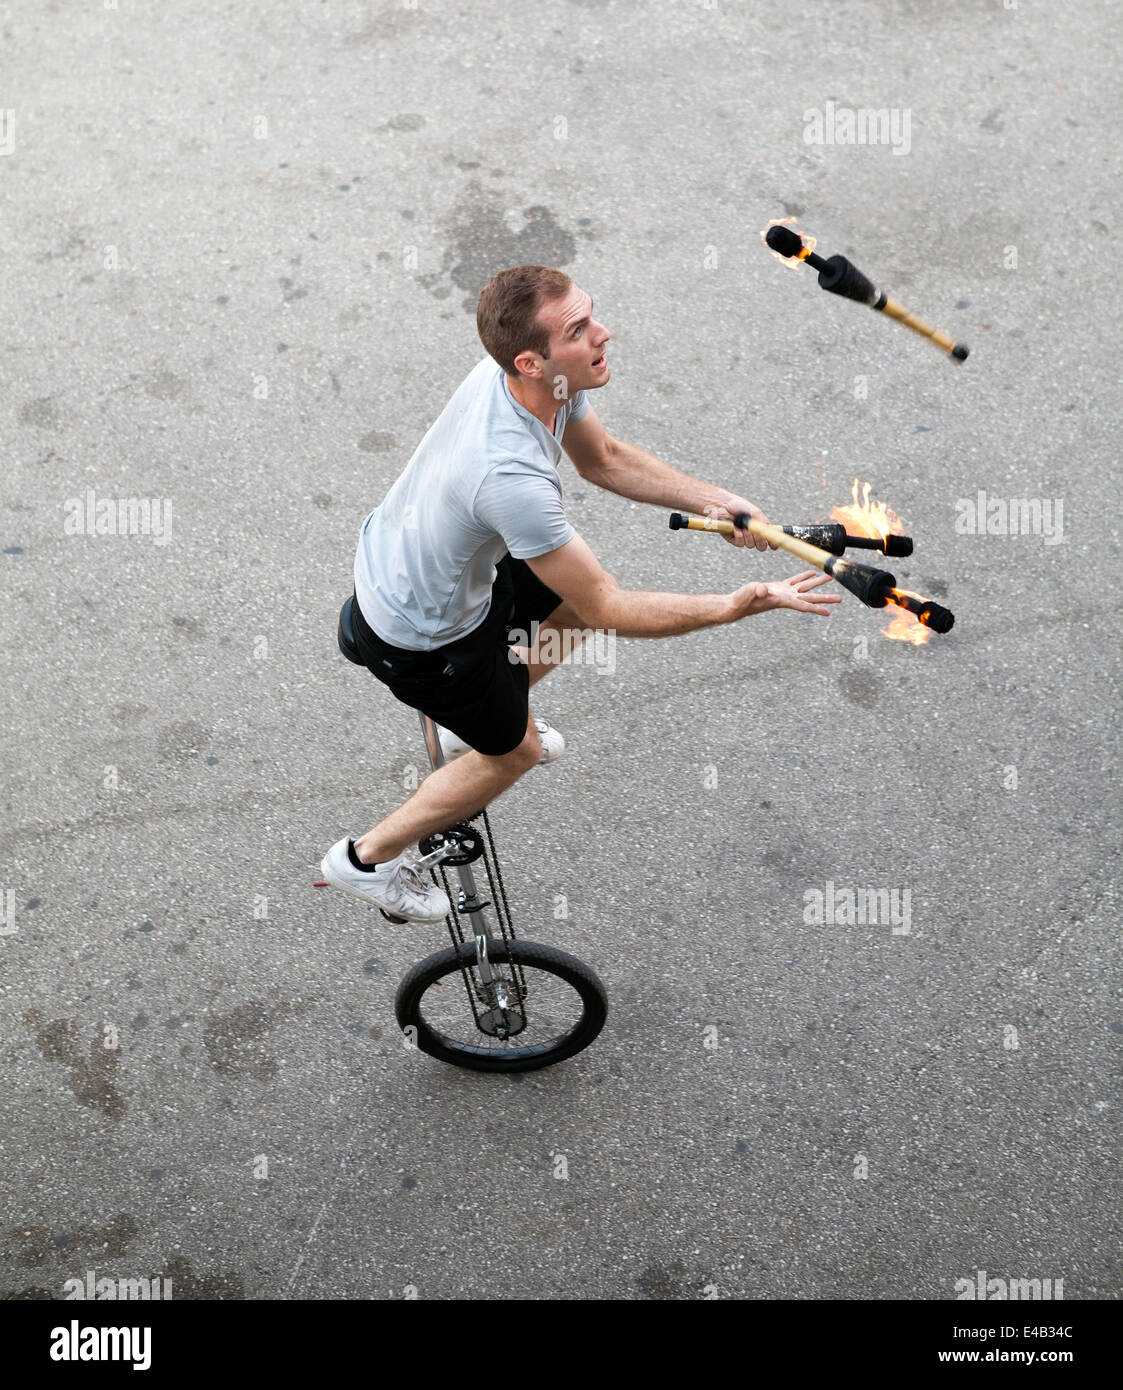 A unicyclist performs at Summerfest, an annual music festival held in Milwaukee, Wisconsin USA. - Stock Image